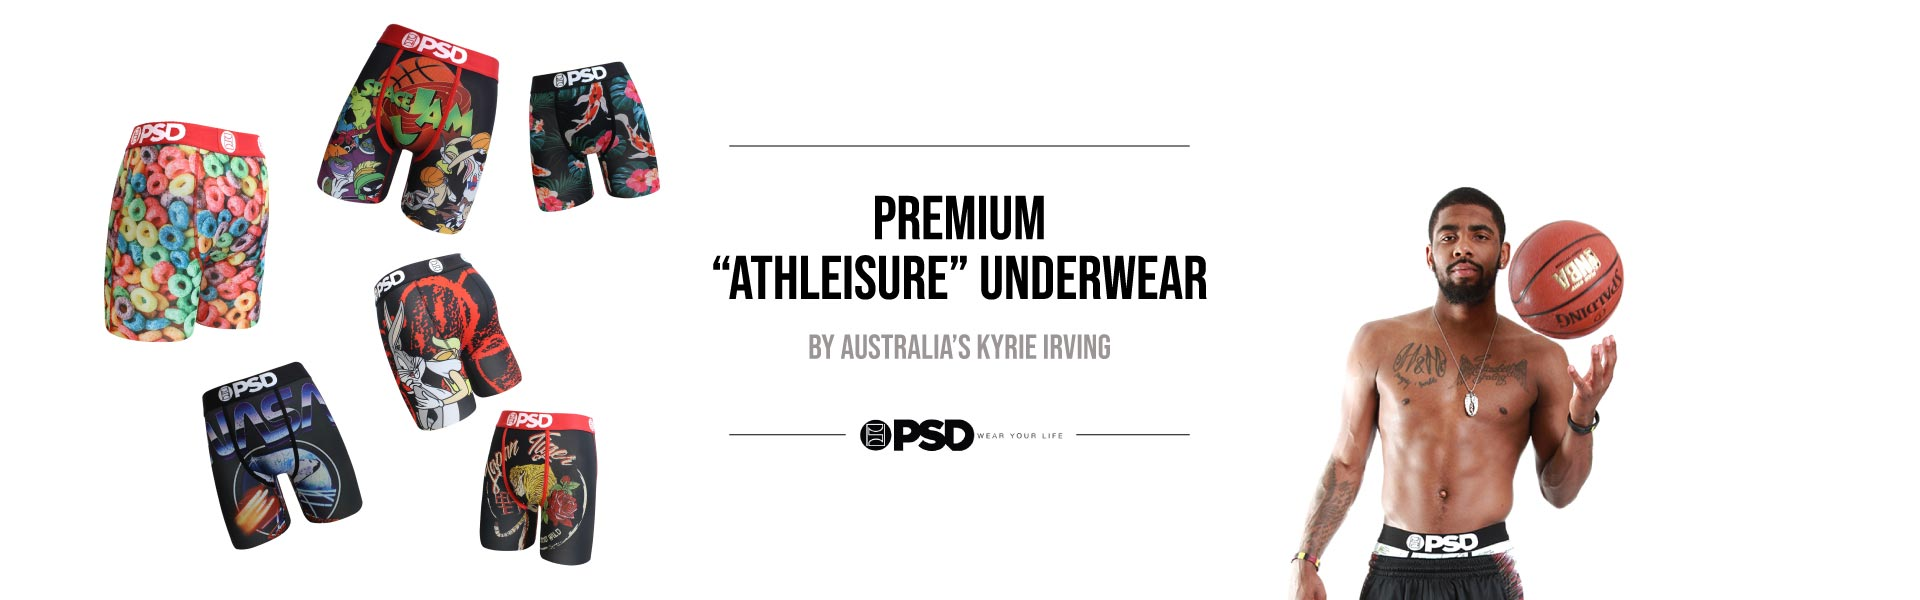 PSD-Underwear-Kyrie-Irving-athletic-mens-underwear-1920